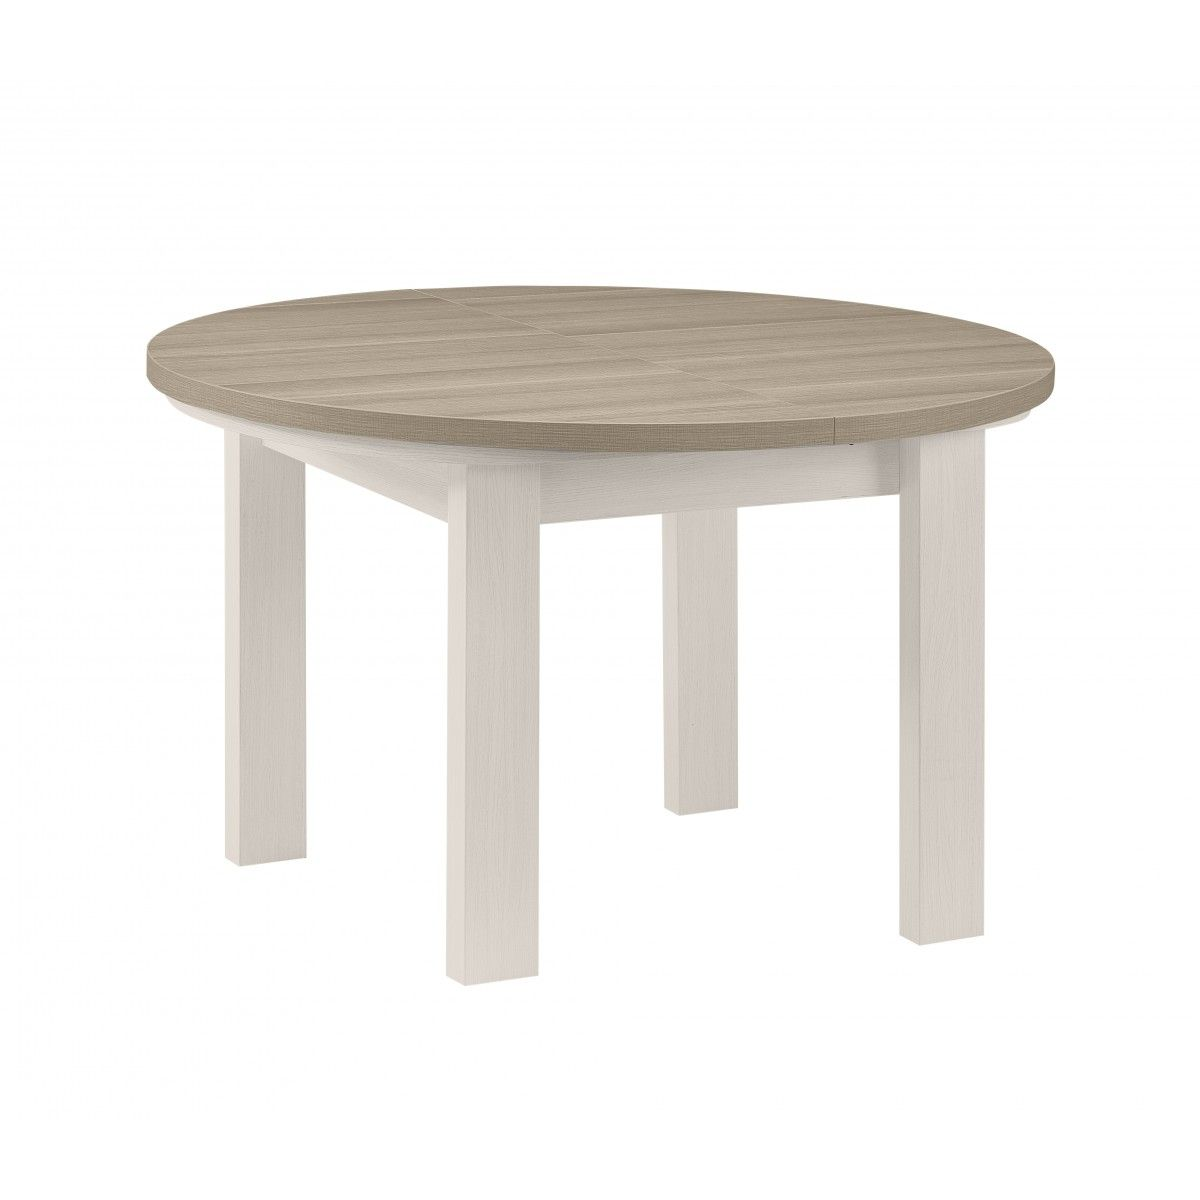 Mesa redonda extensible toscana home decoration for Table extensible toscana